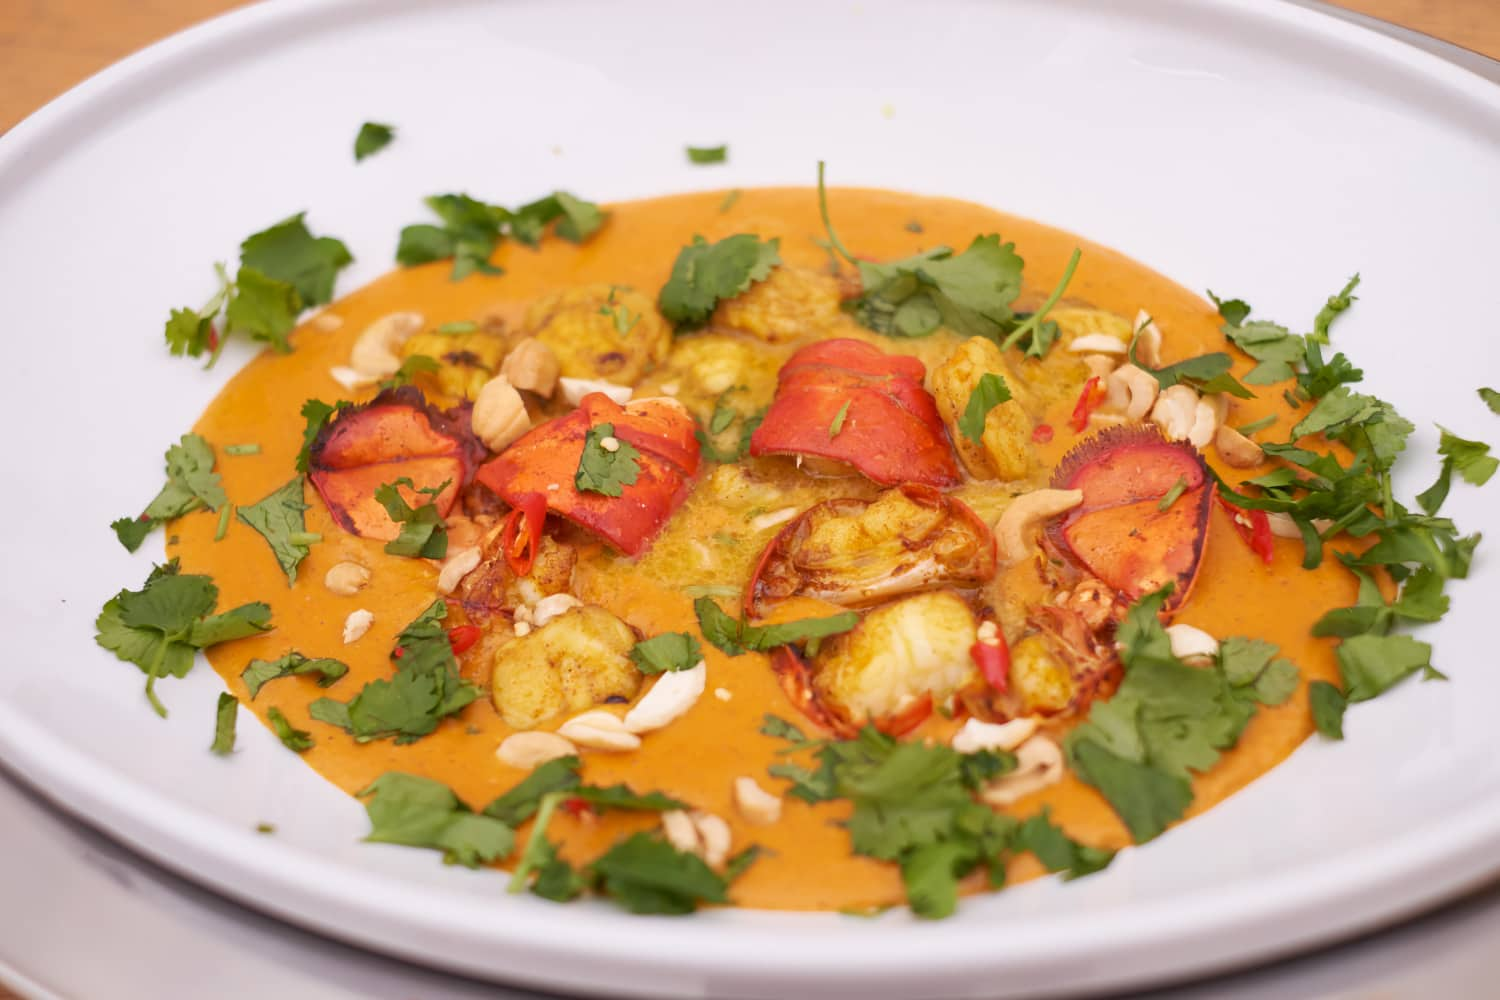 Lobster and Monkfish Curry in the serving bowl.